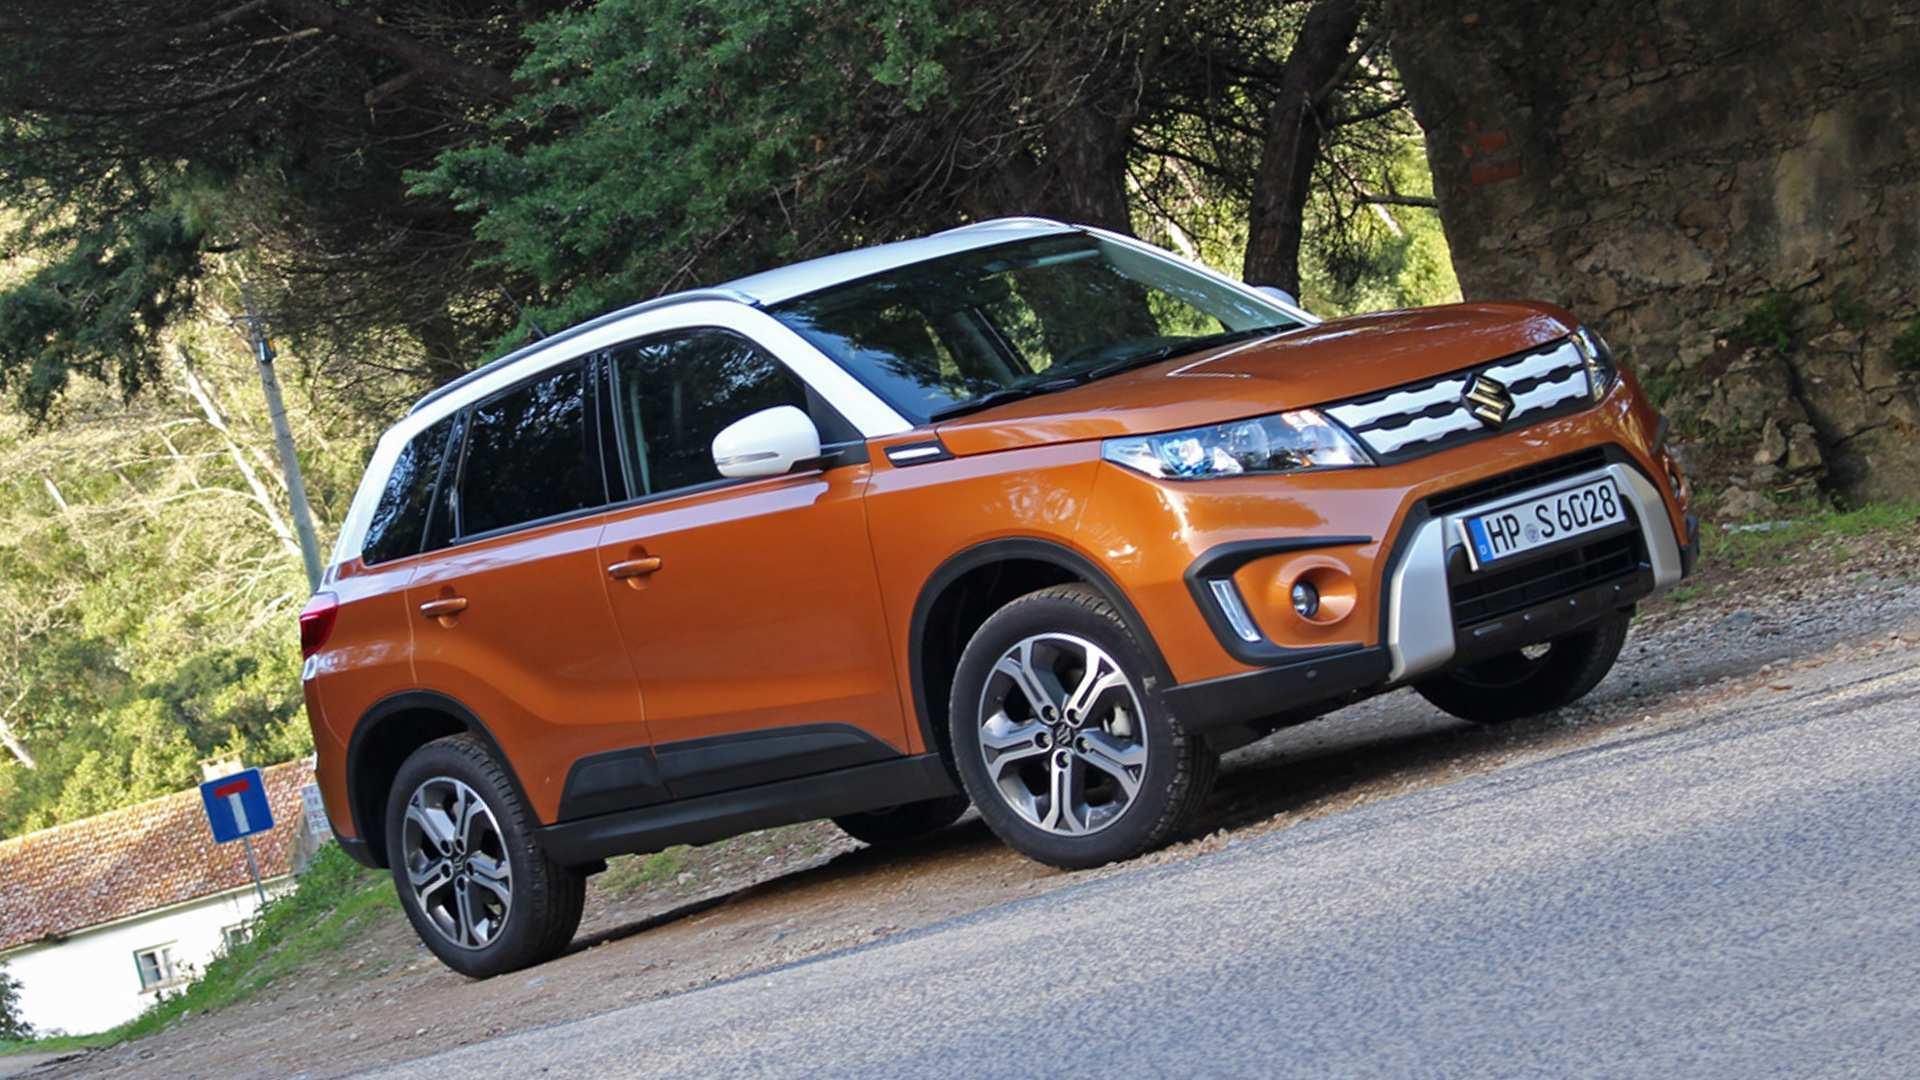 69 New 2020 Suzuki Grand Vitara Preview Redesign And Concept